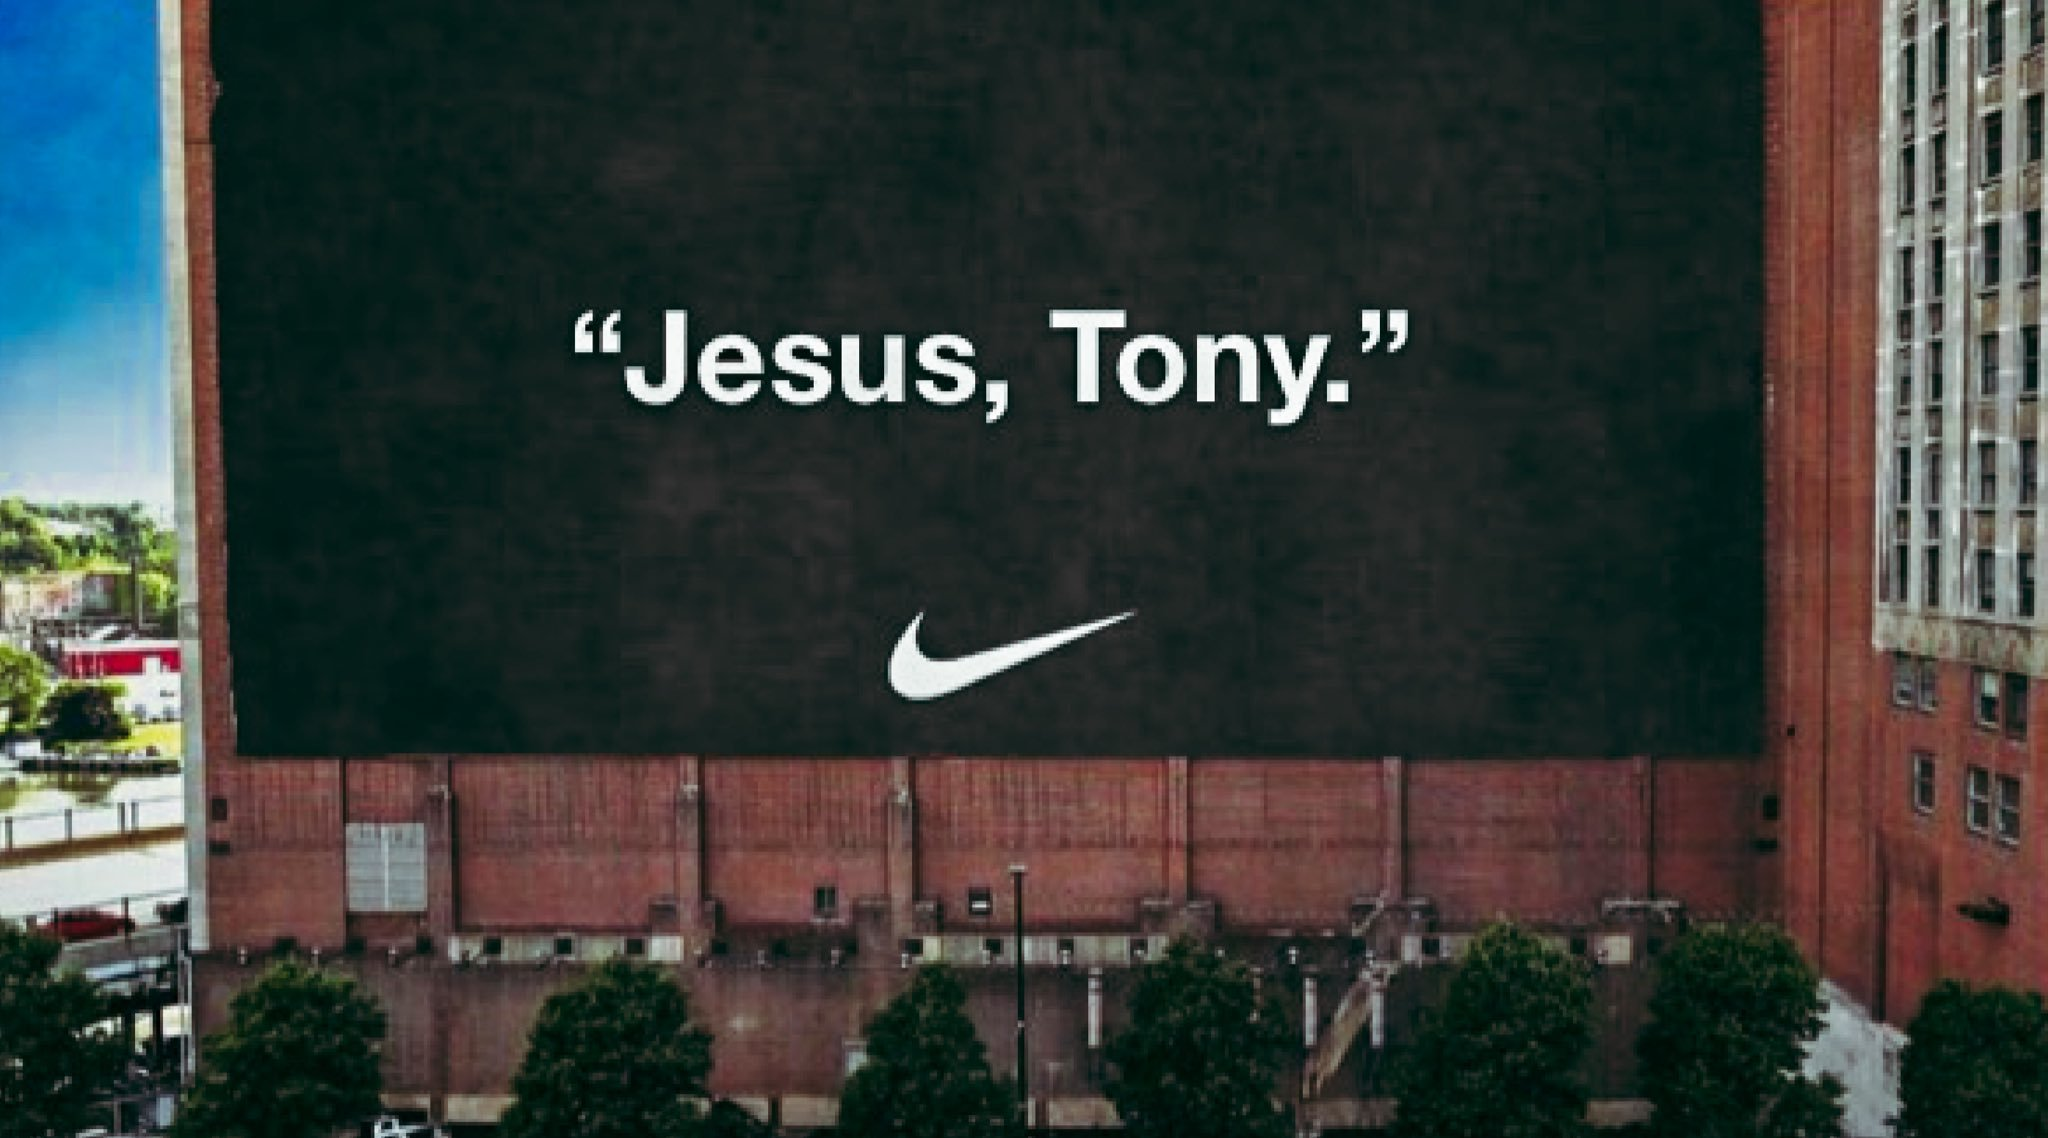 We are all witnesses, indeed.